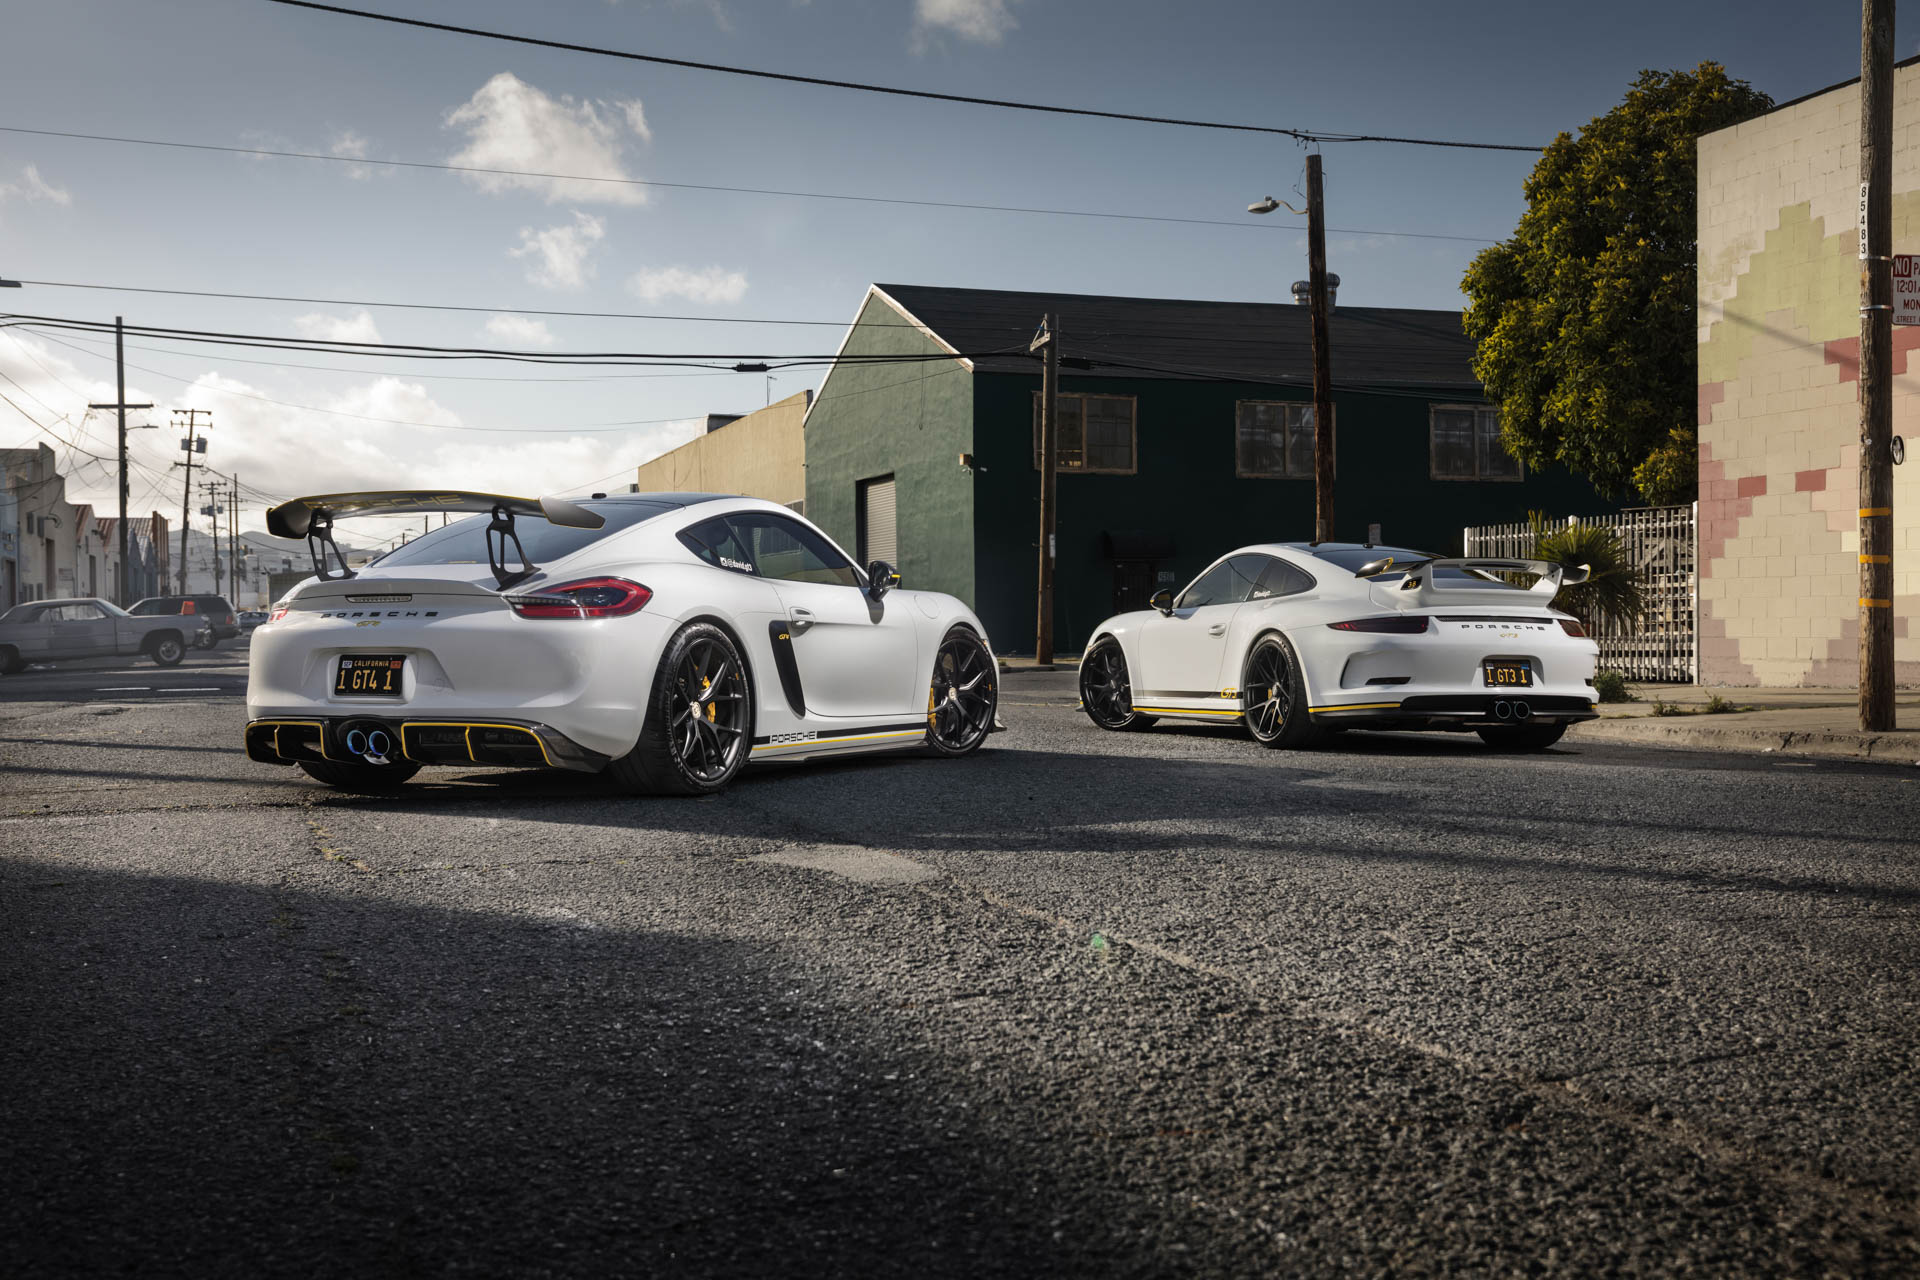 Porsche 911 GT3 and Cayman GT4 in San Francisco